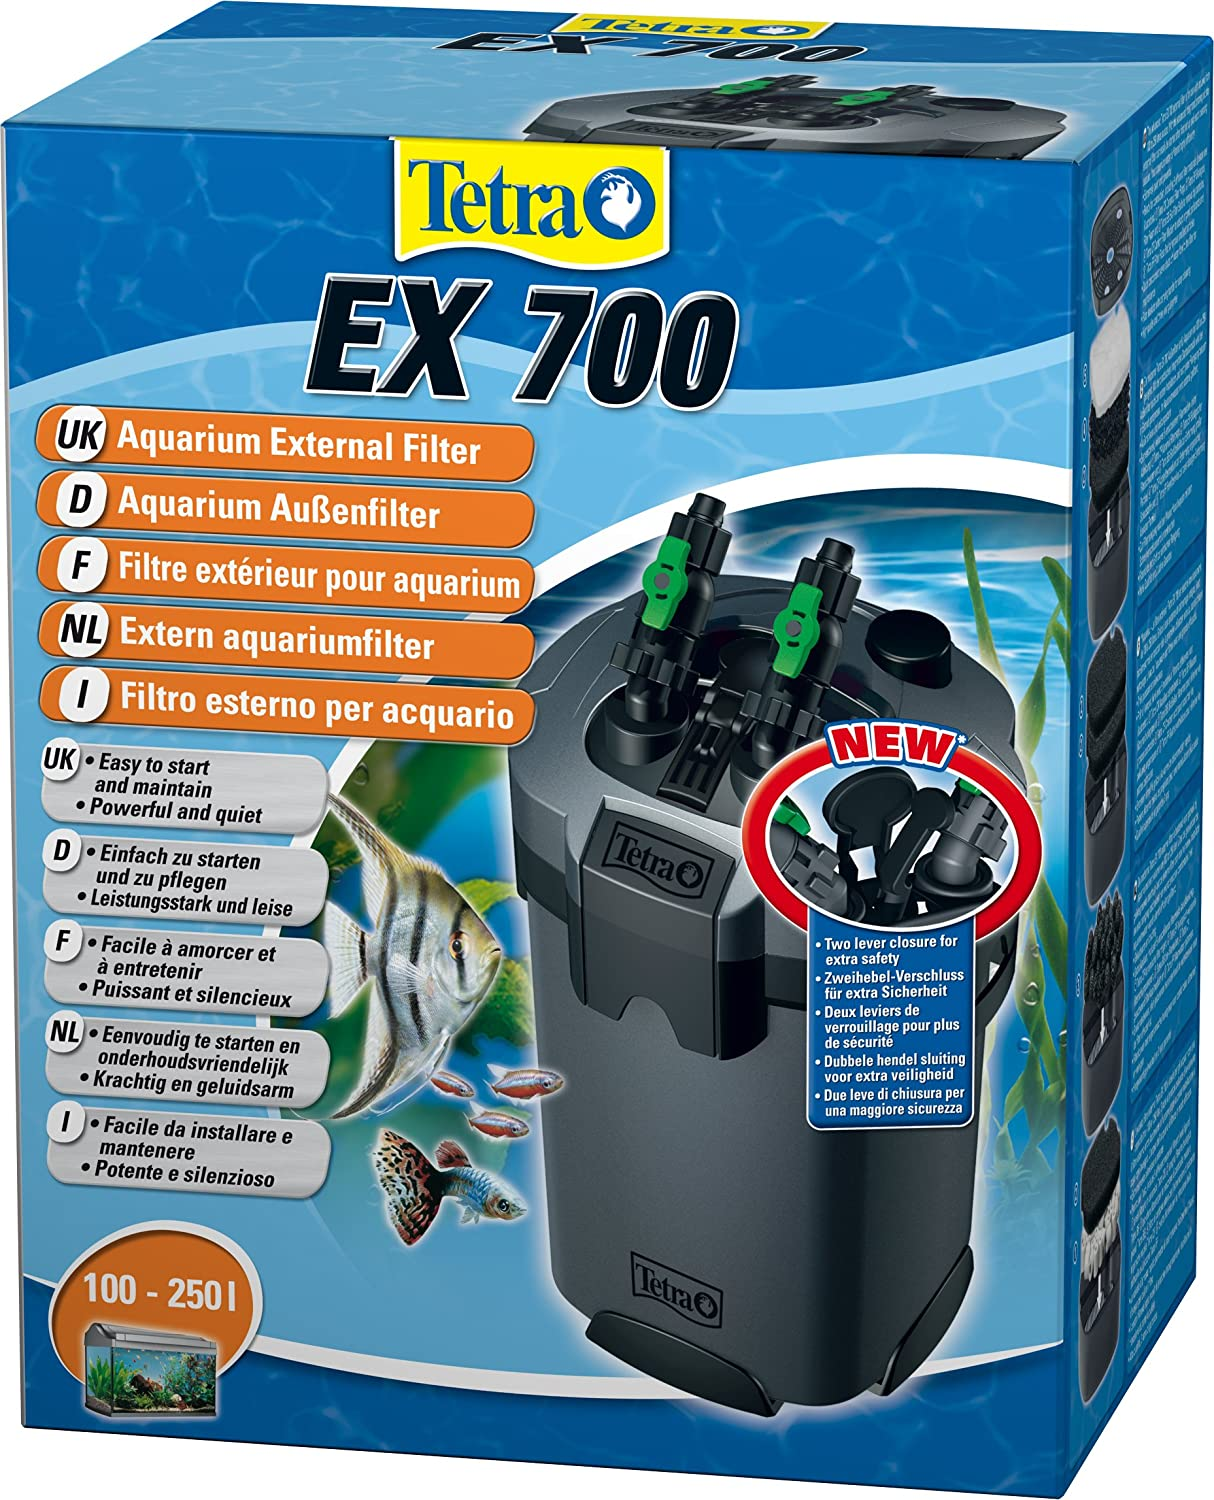 91ri1lf9JjL._SL1500_ tetra tec ex 700 external filter amazon co uk pet supplies  at mr168.co